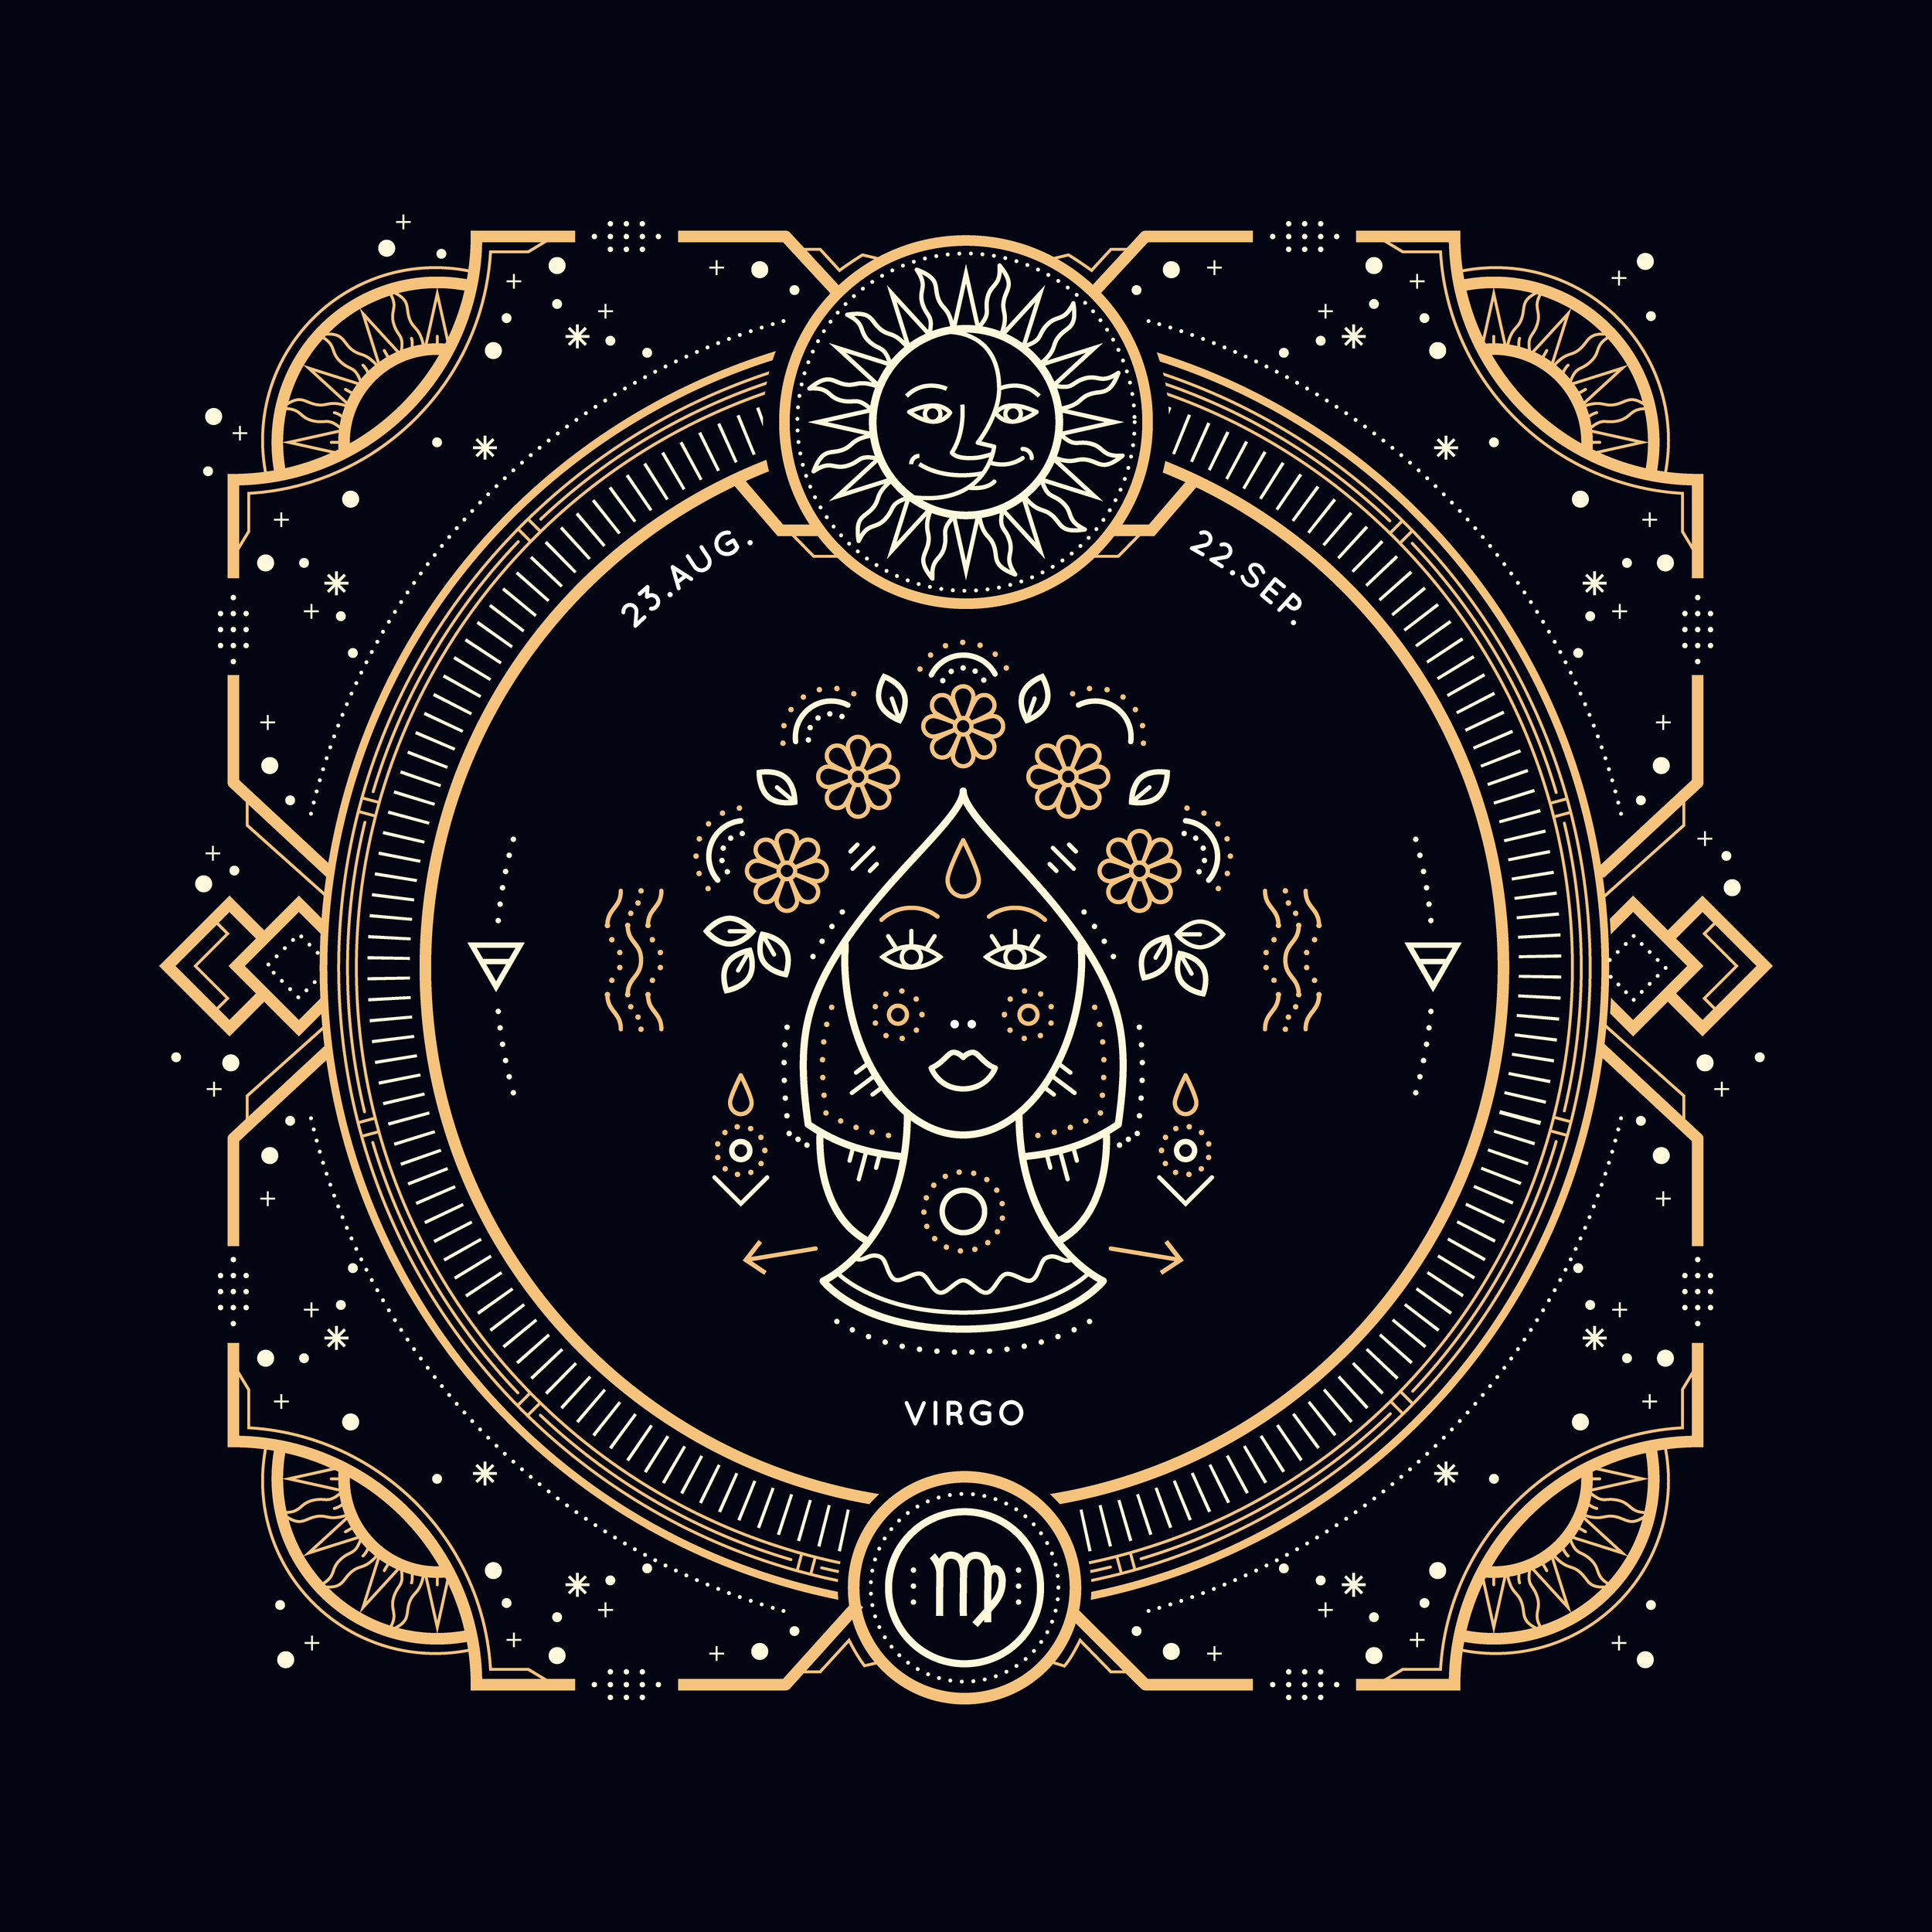 Zodiac-signs-black-gold_Virgo.jpg